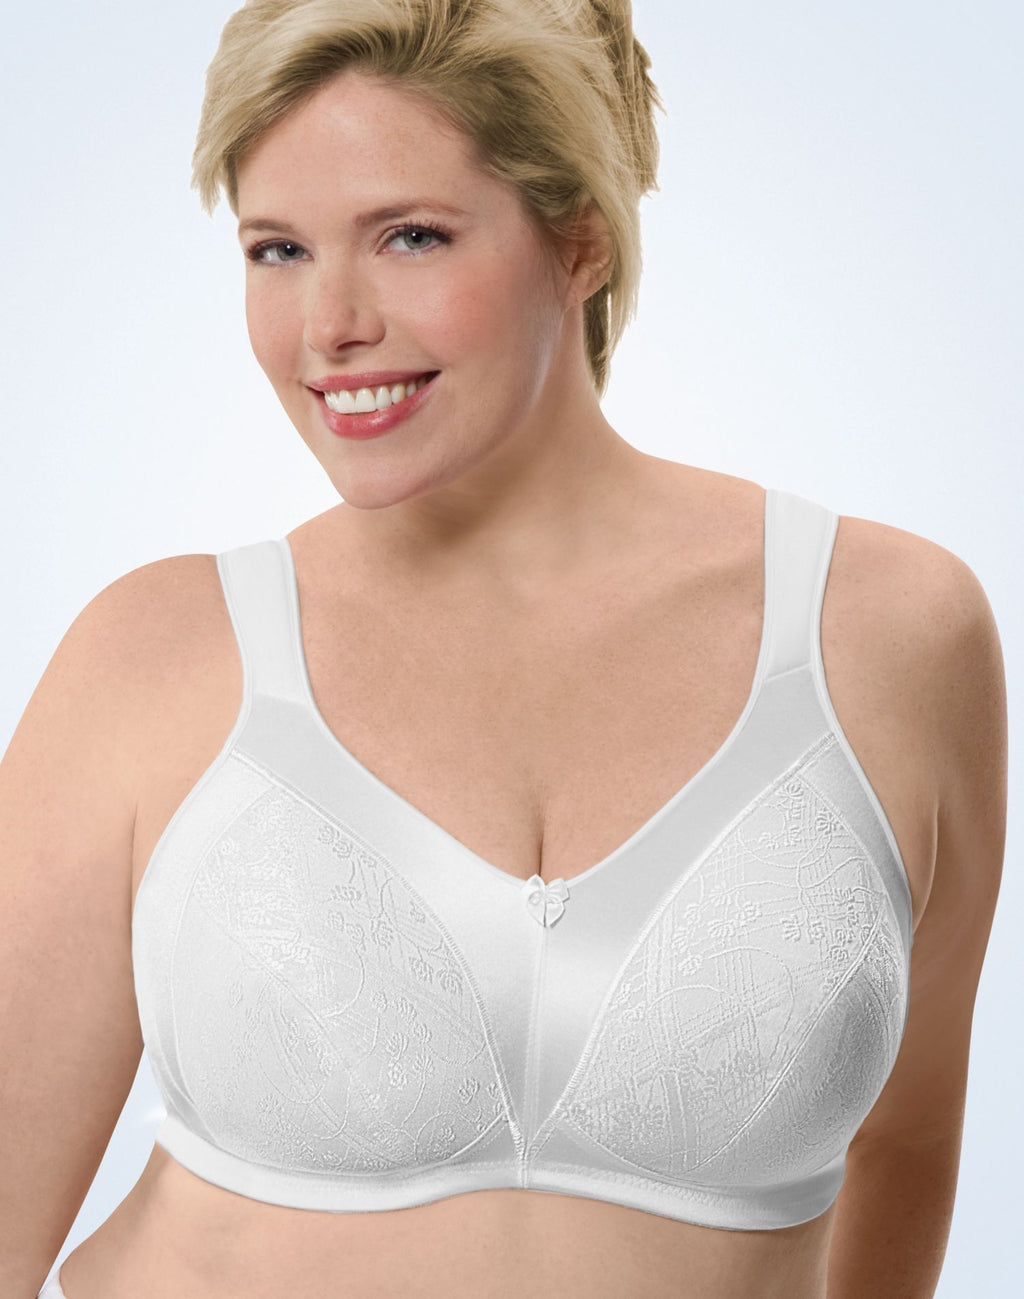 JMS Cushion Strap Wirefree Minimizer Soft Cup Bra